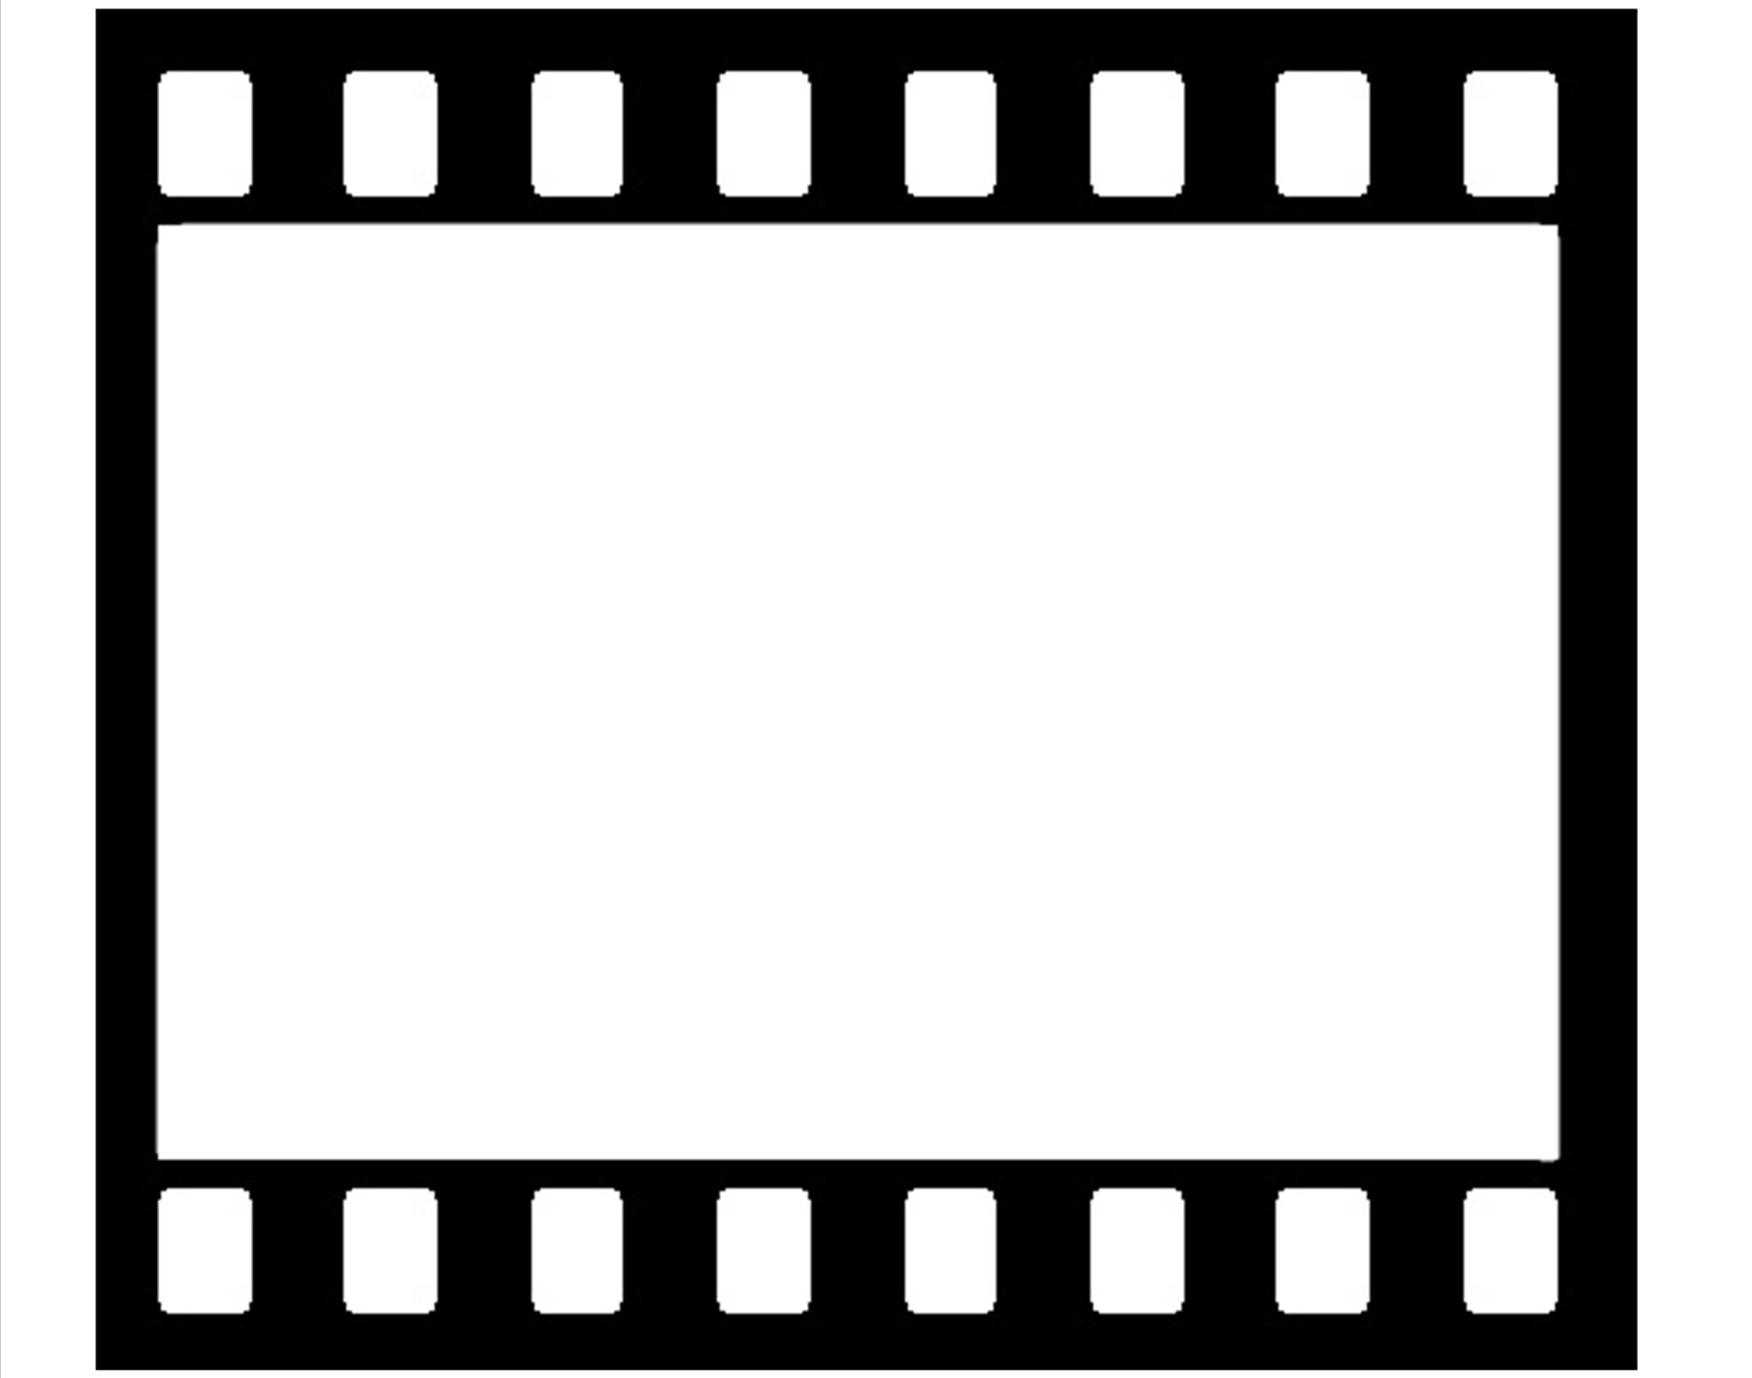 Movie reel templates clipart clipart suggest for Printable film strip template